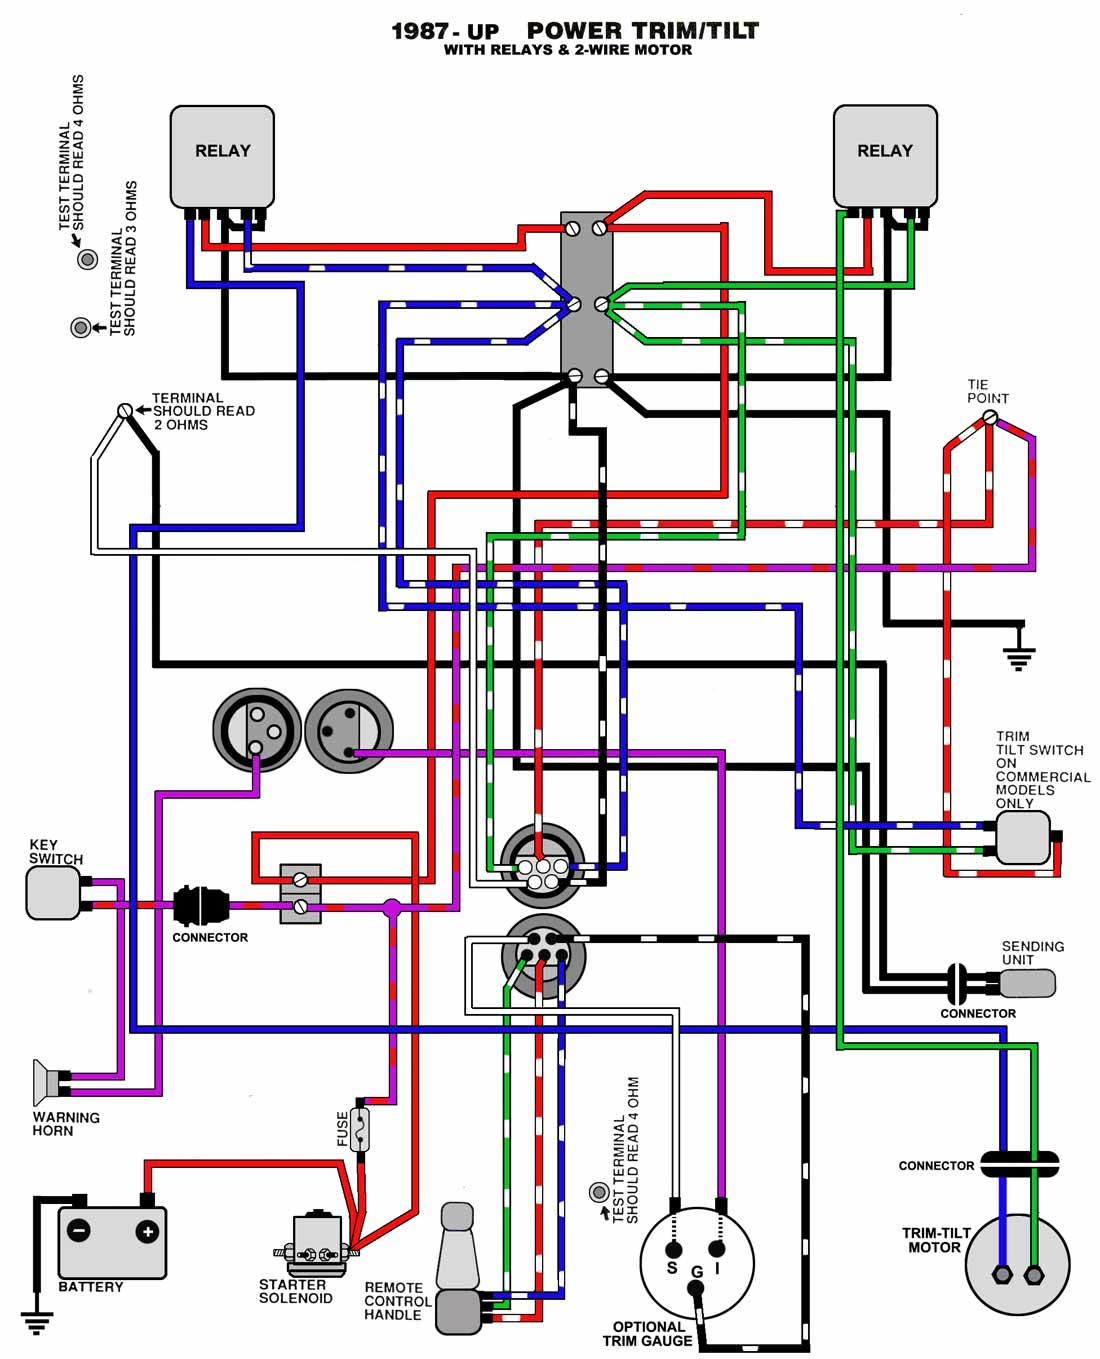 TnT_87_UP mastertech marine evinrude johnson outboard wiring diagrams OMC Throttle Control Parts at edmiracle.co